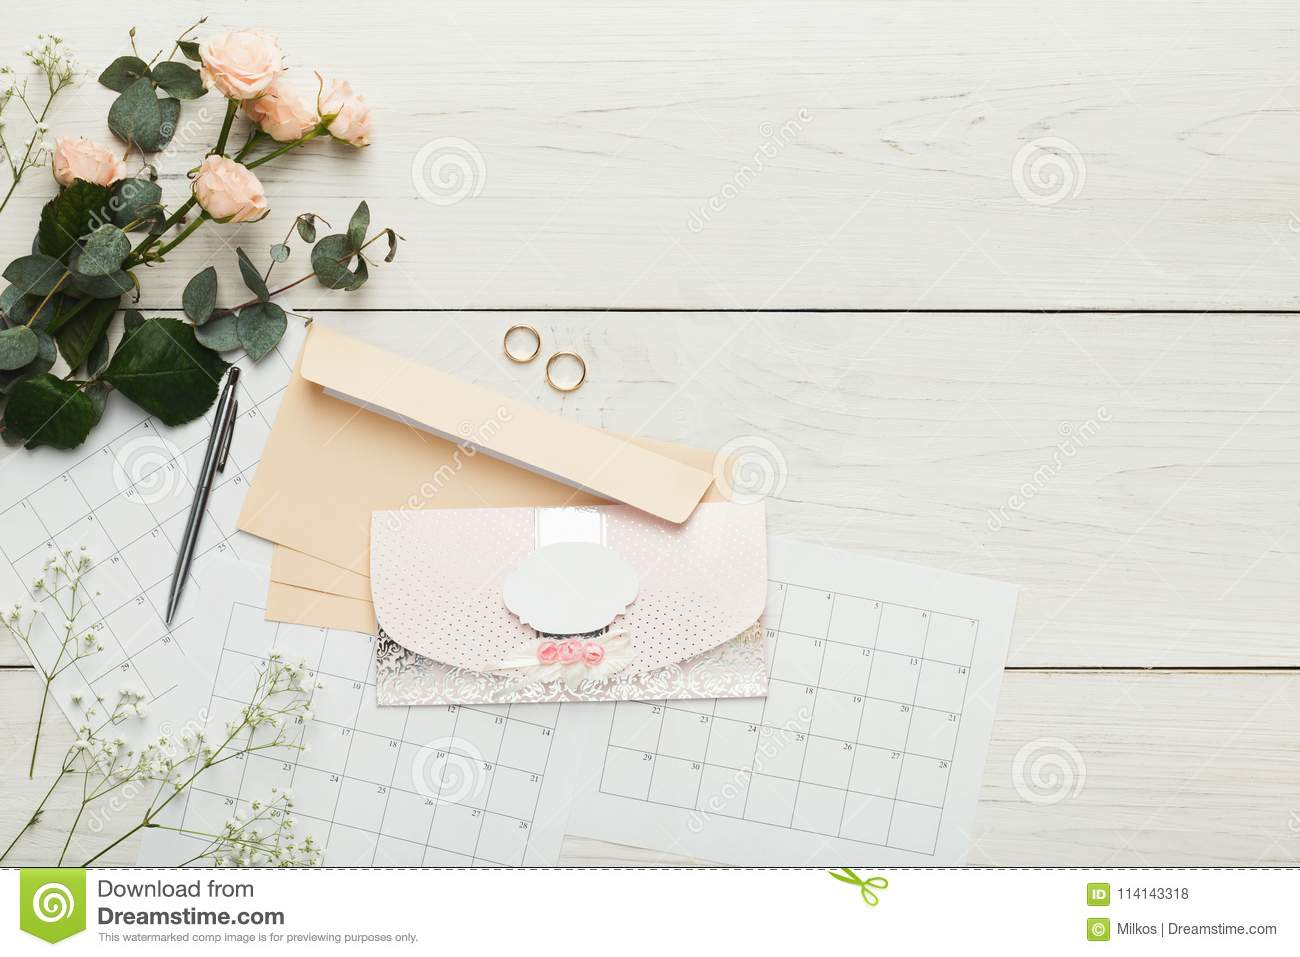 wedding invitation cards and envelopes on white wooden table to